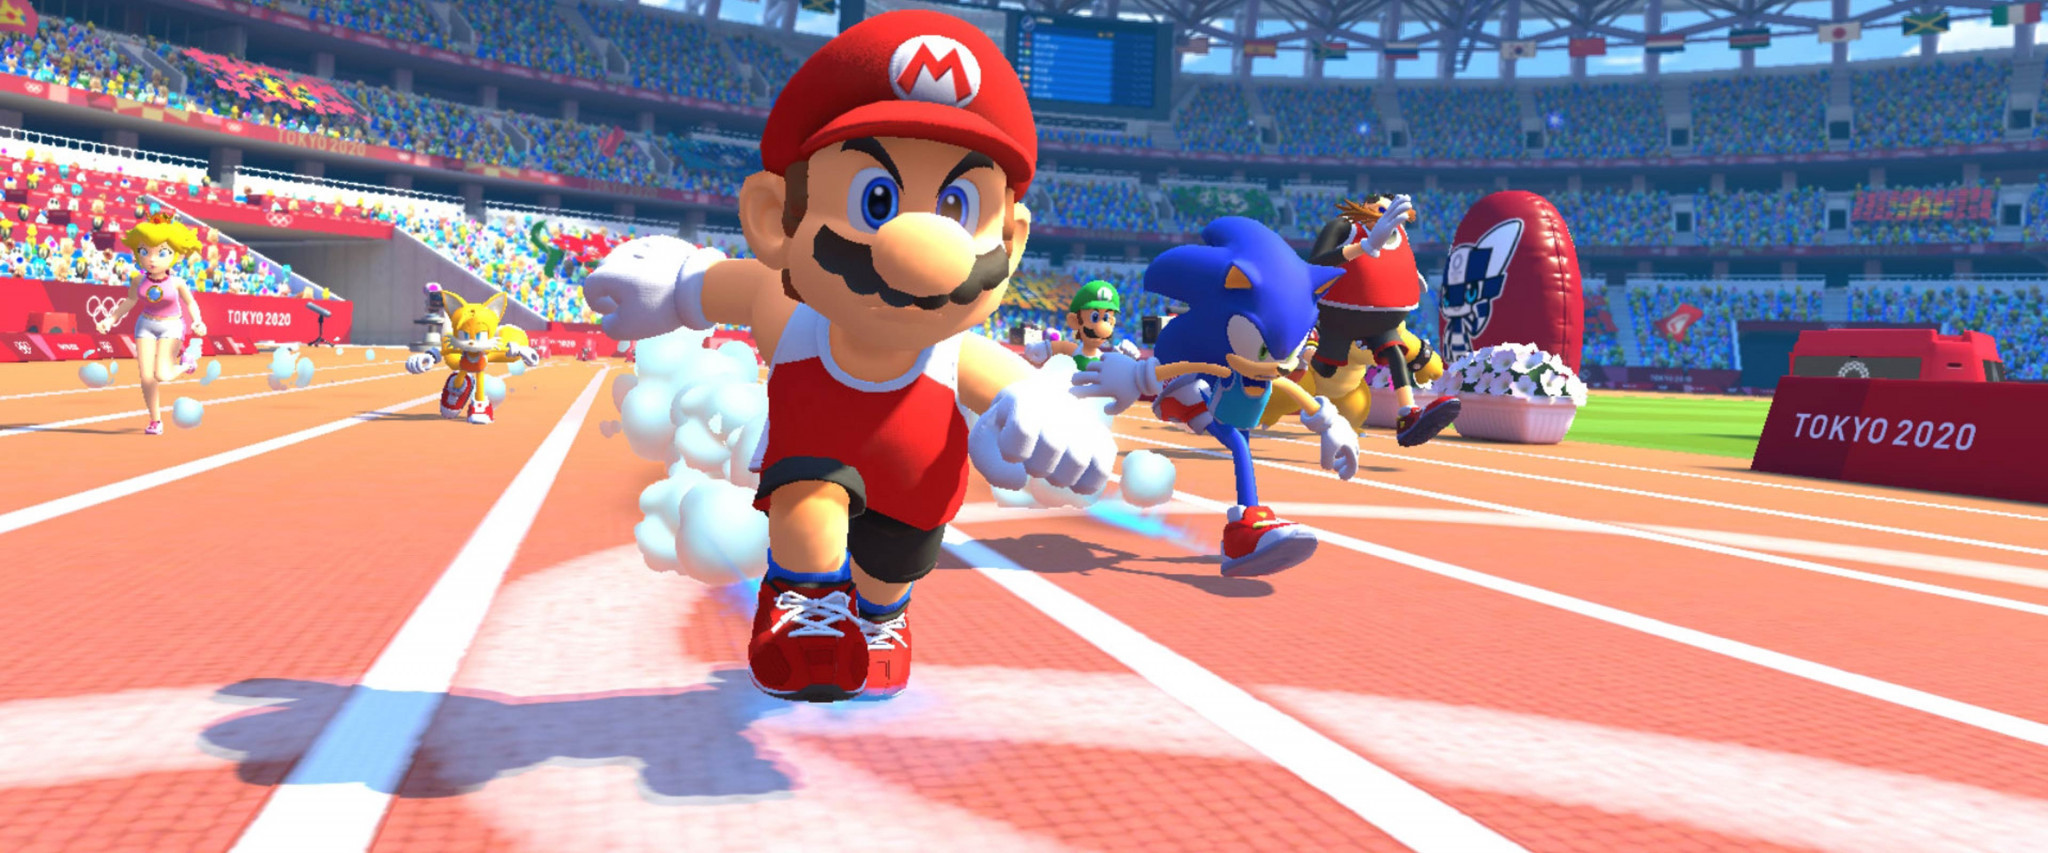 Mario & Sonic at the Olympic Games Tokyo 2020 released in Americas